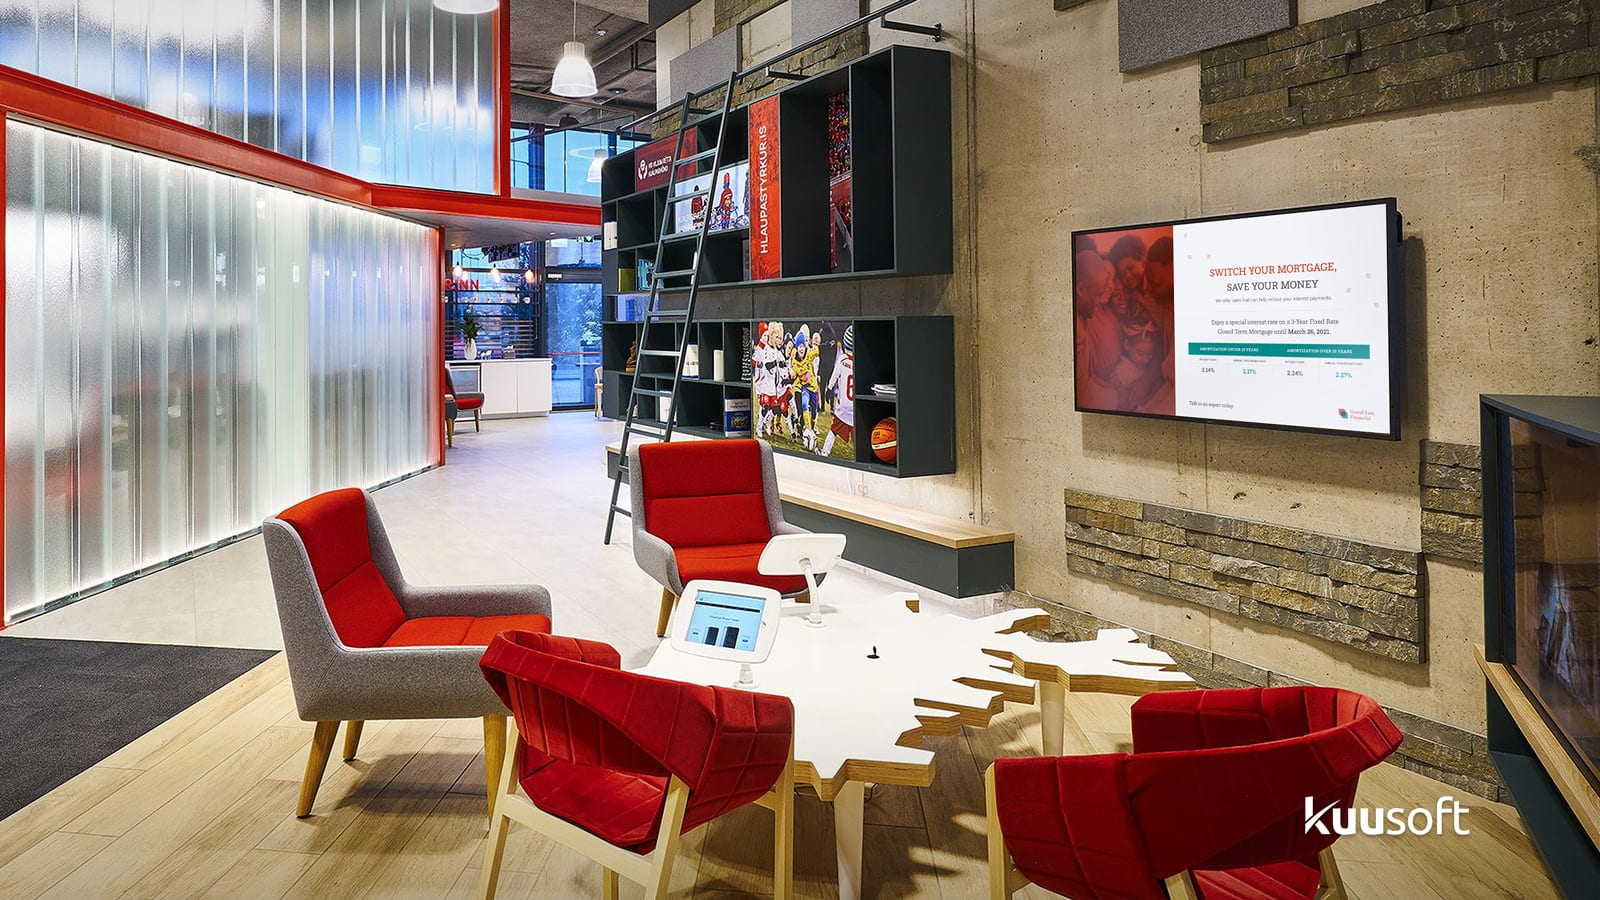 An innovative bank with comfotable chairs and digital signage in branch